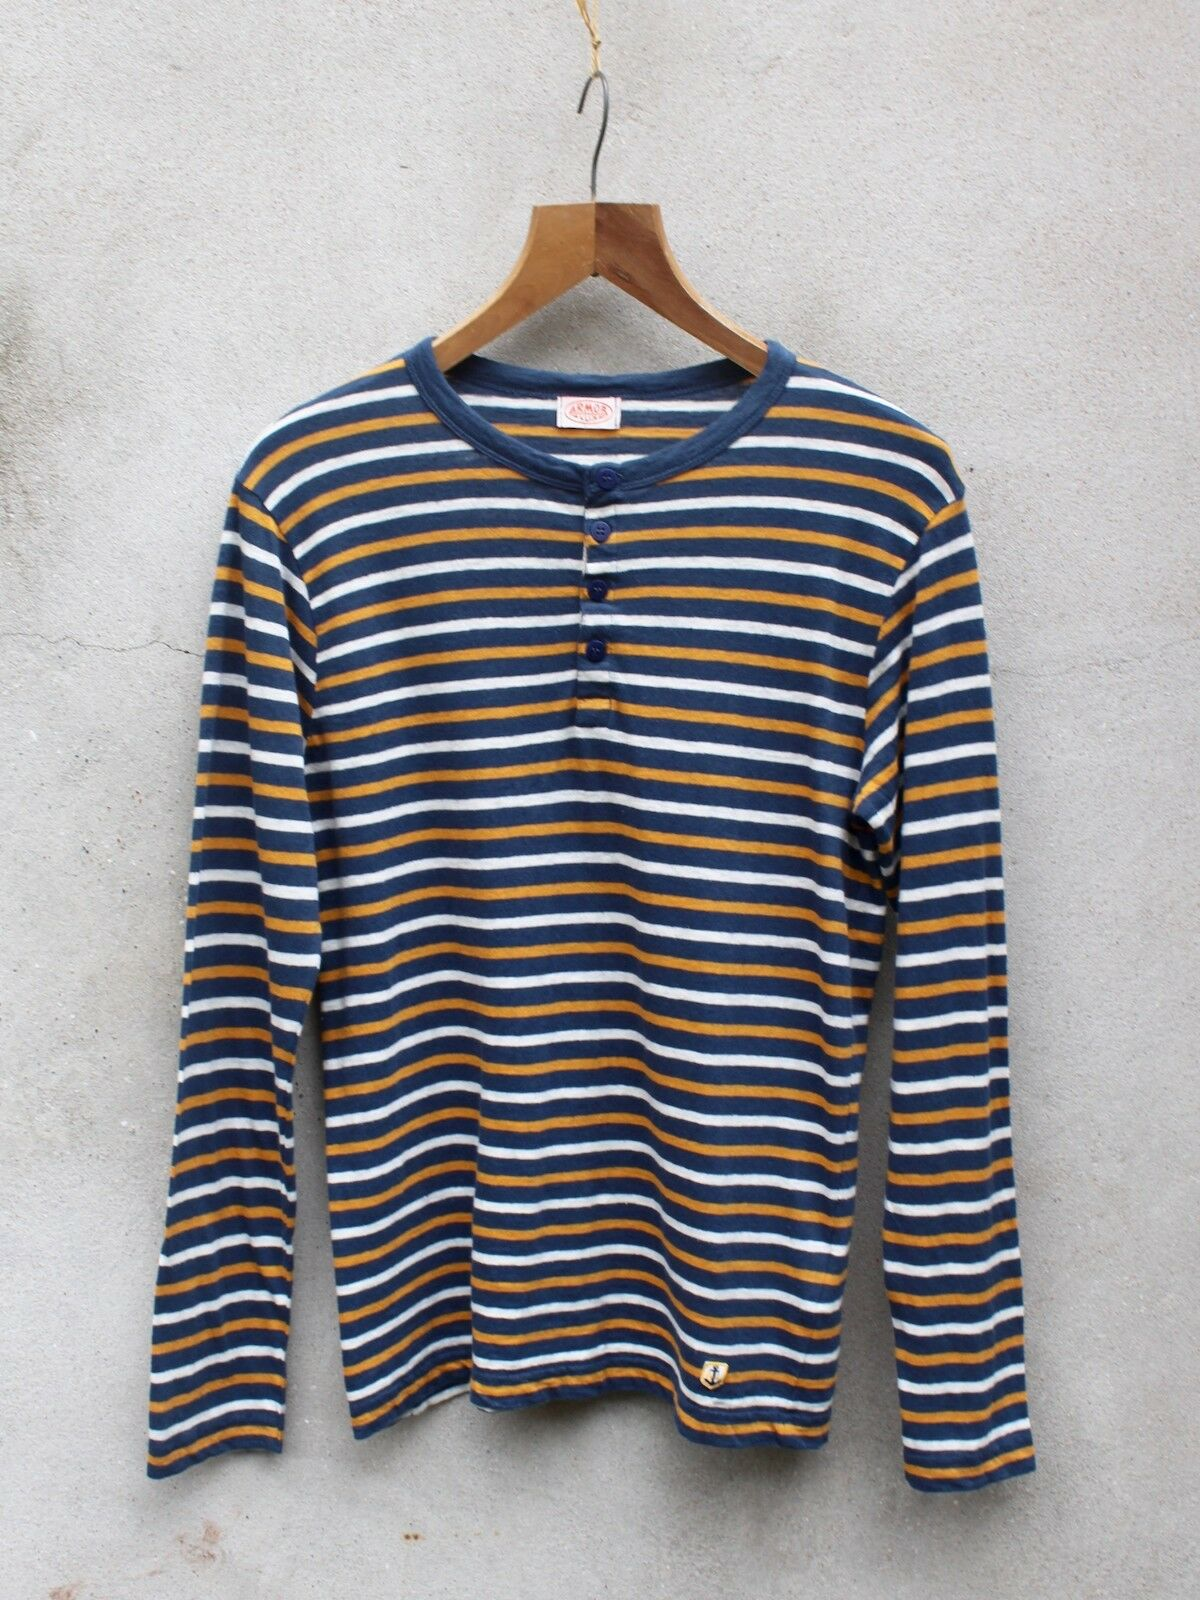 Tunisini Breton Top Da Armor-LUX - 100% LINO COTONE-Made in France